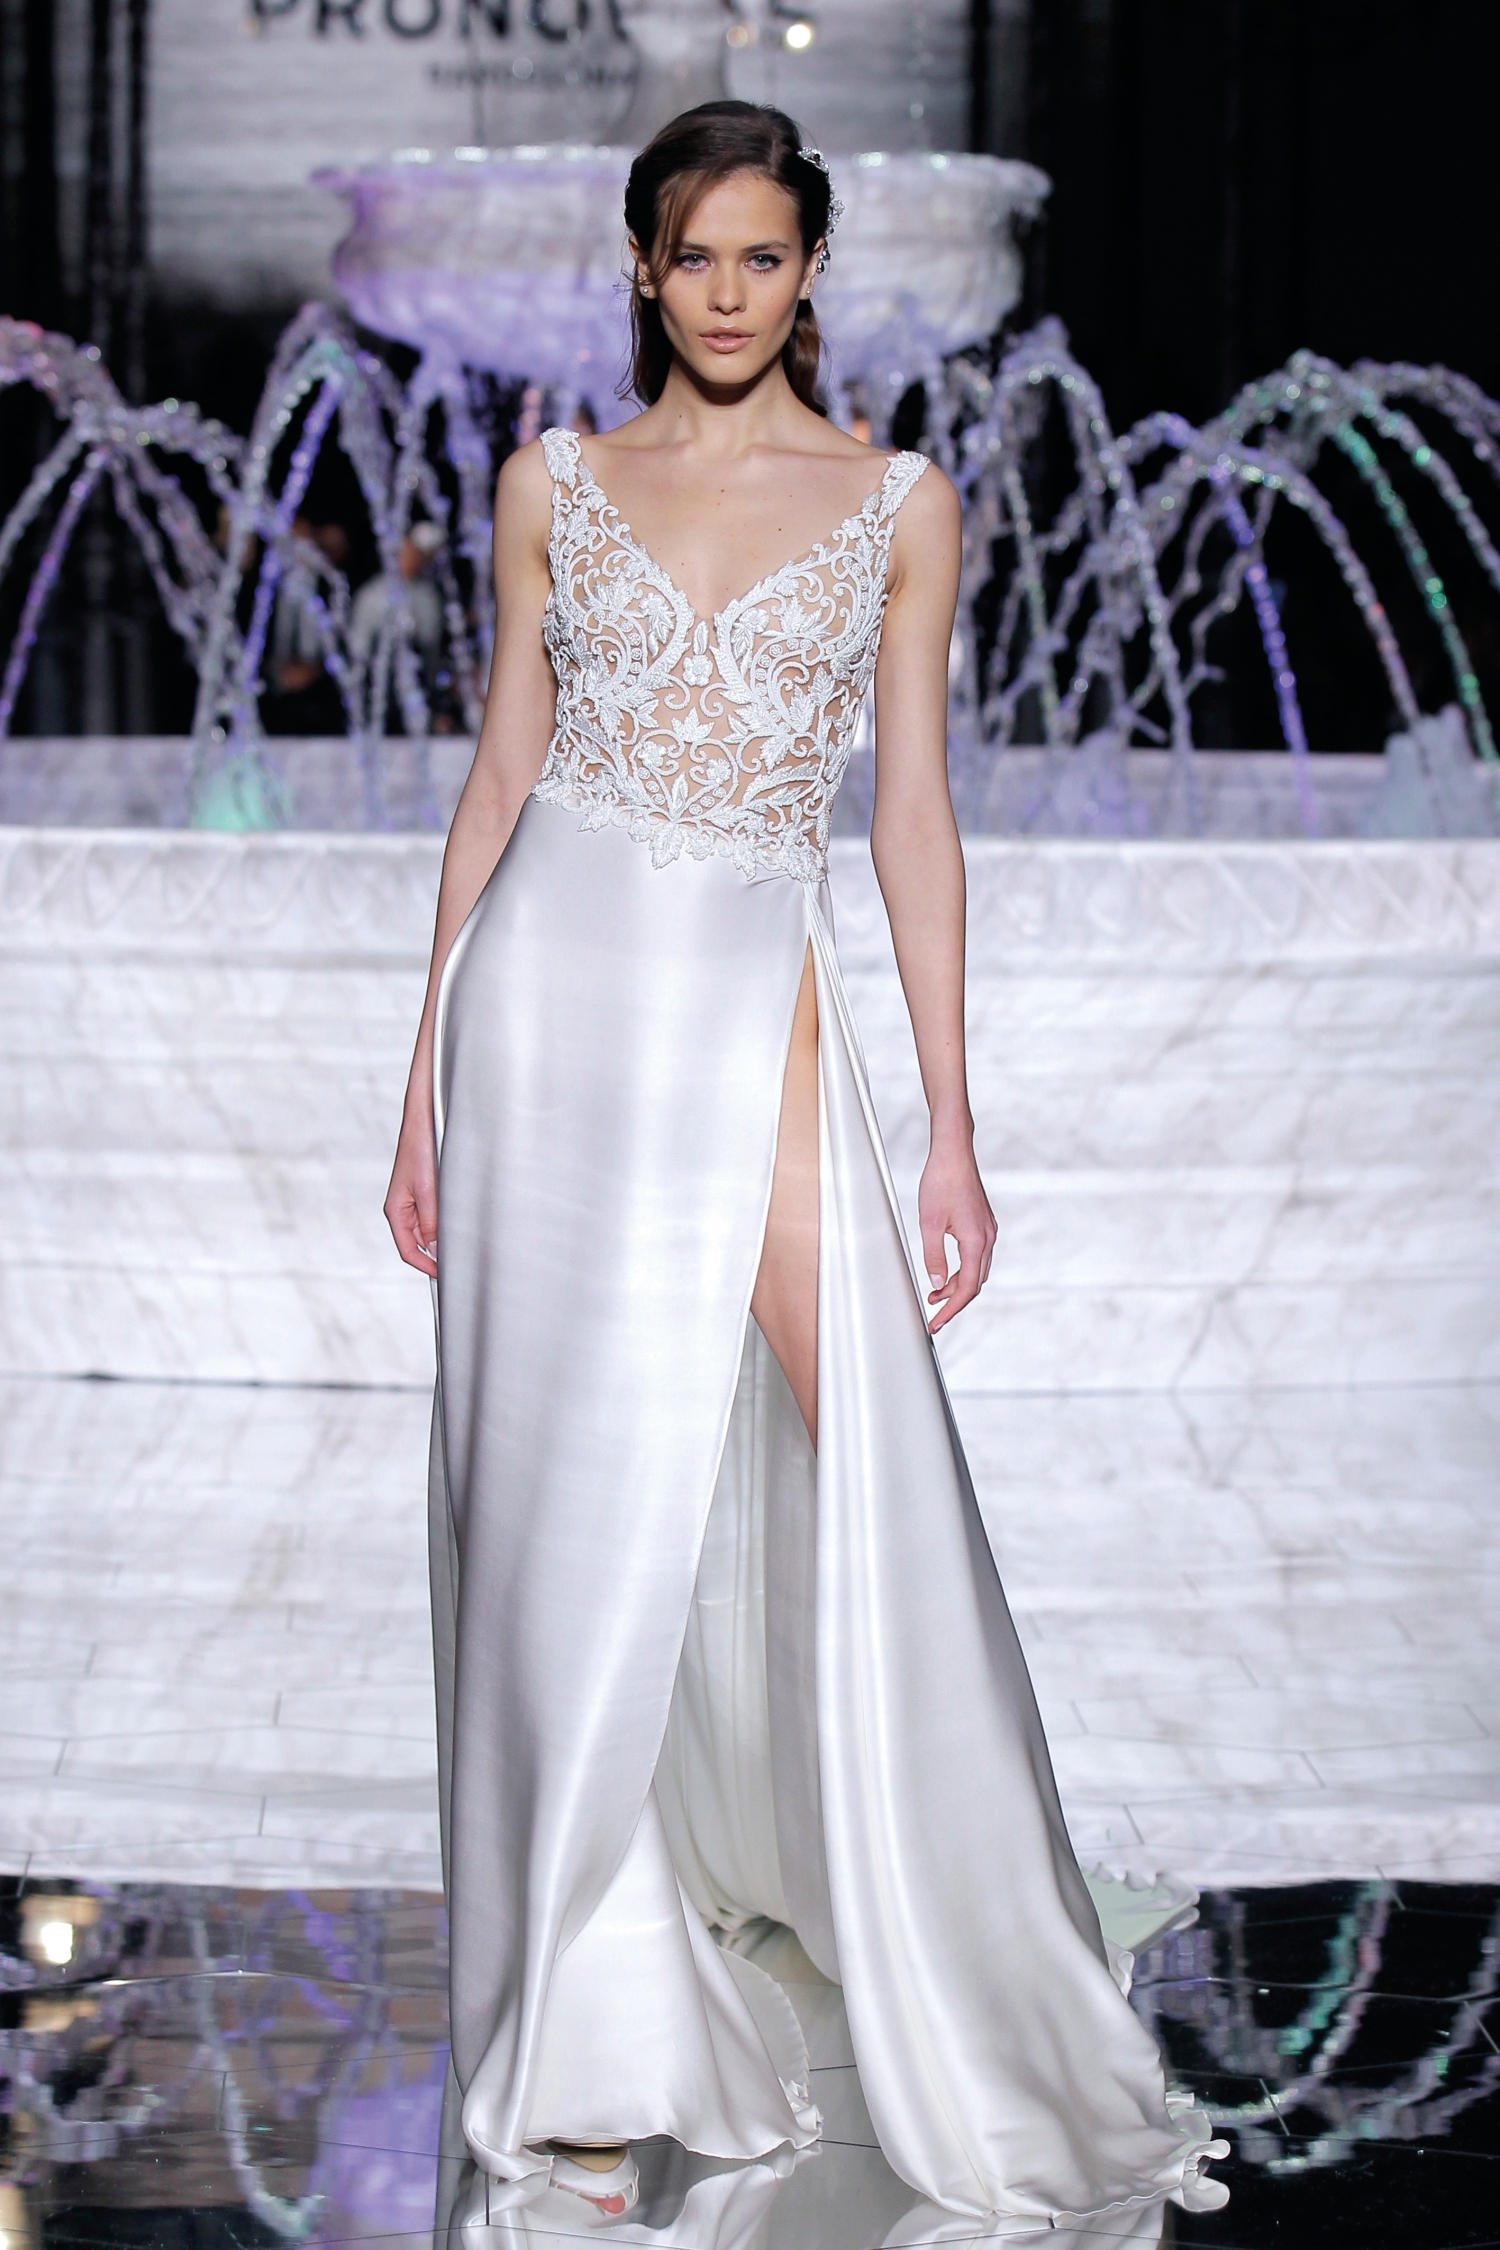 1-PRONOVIAS FASHION SHOW_Rosales